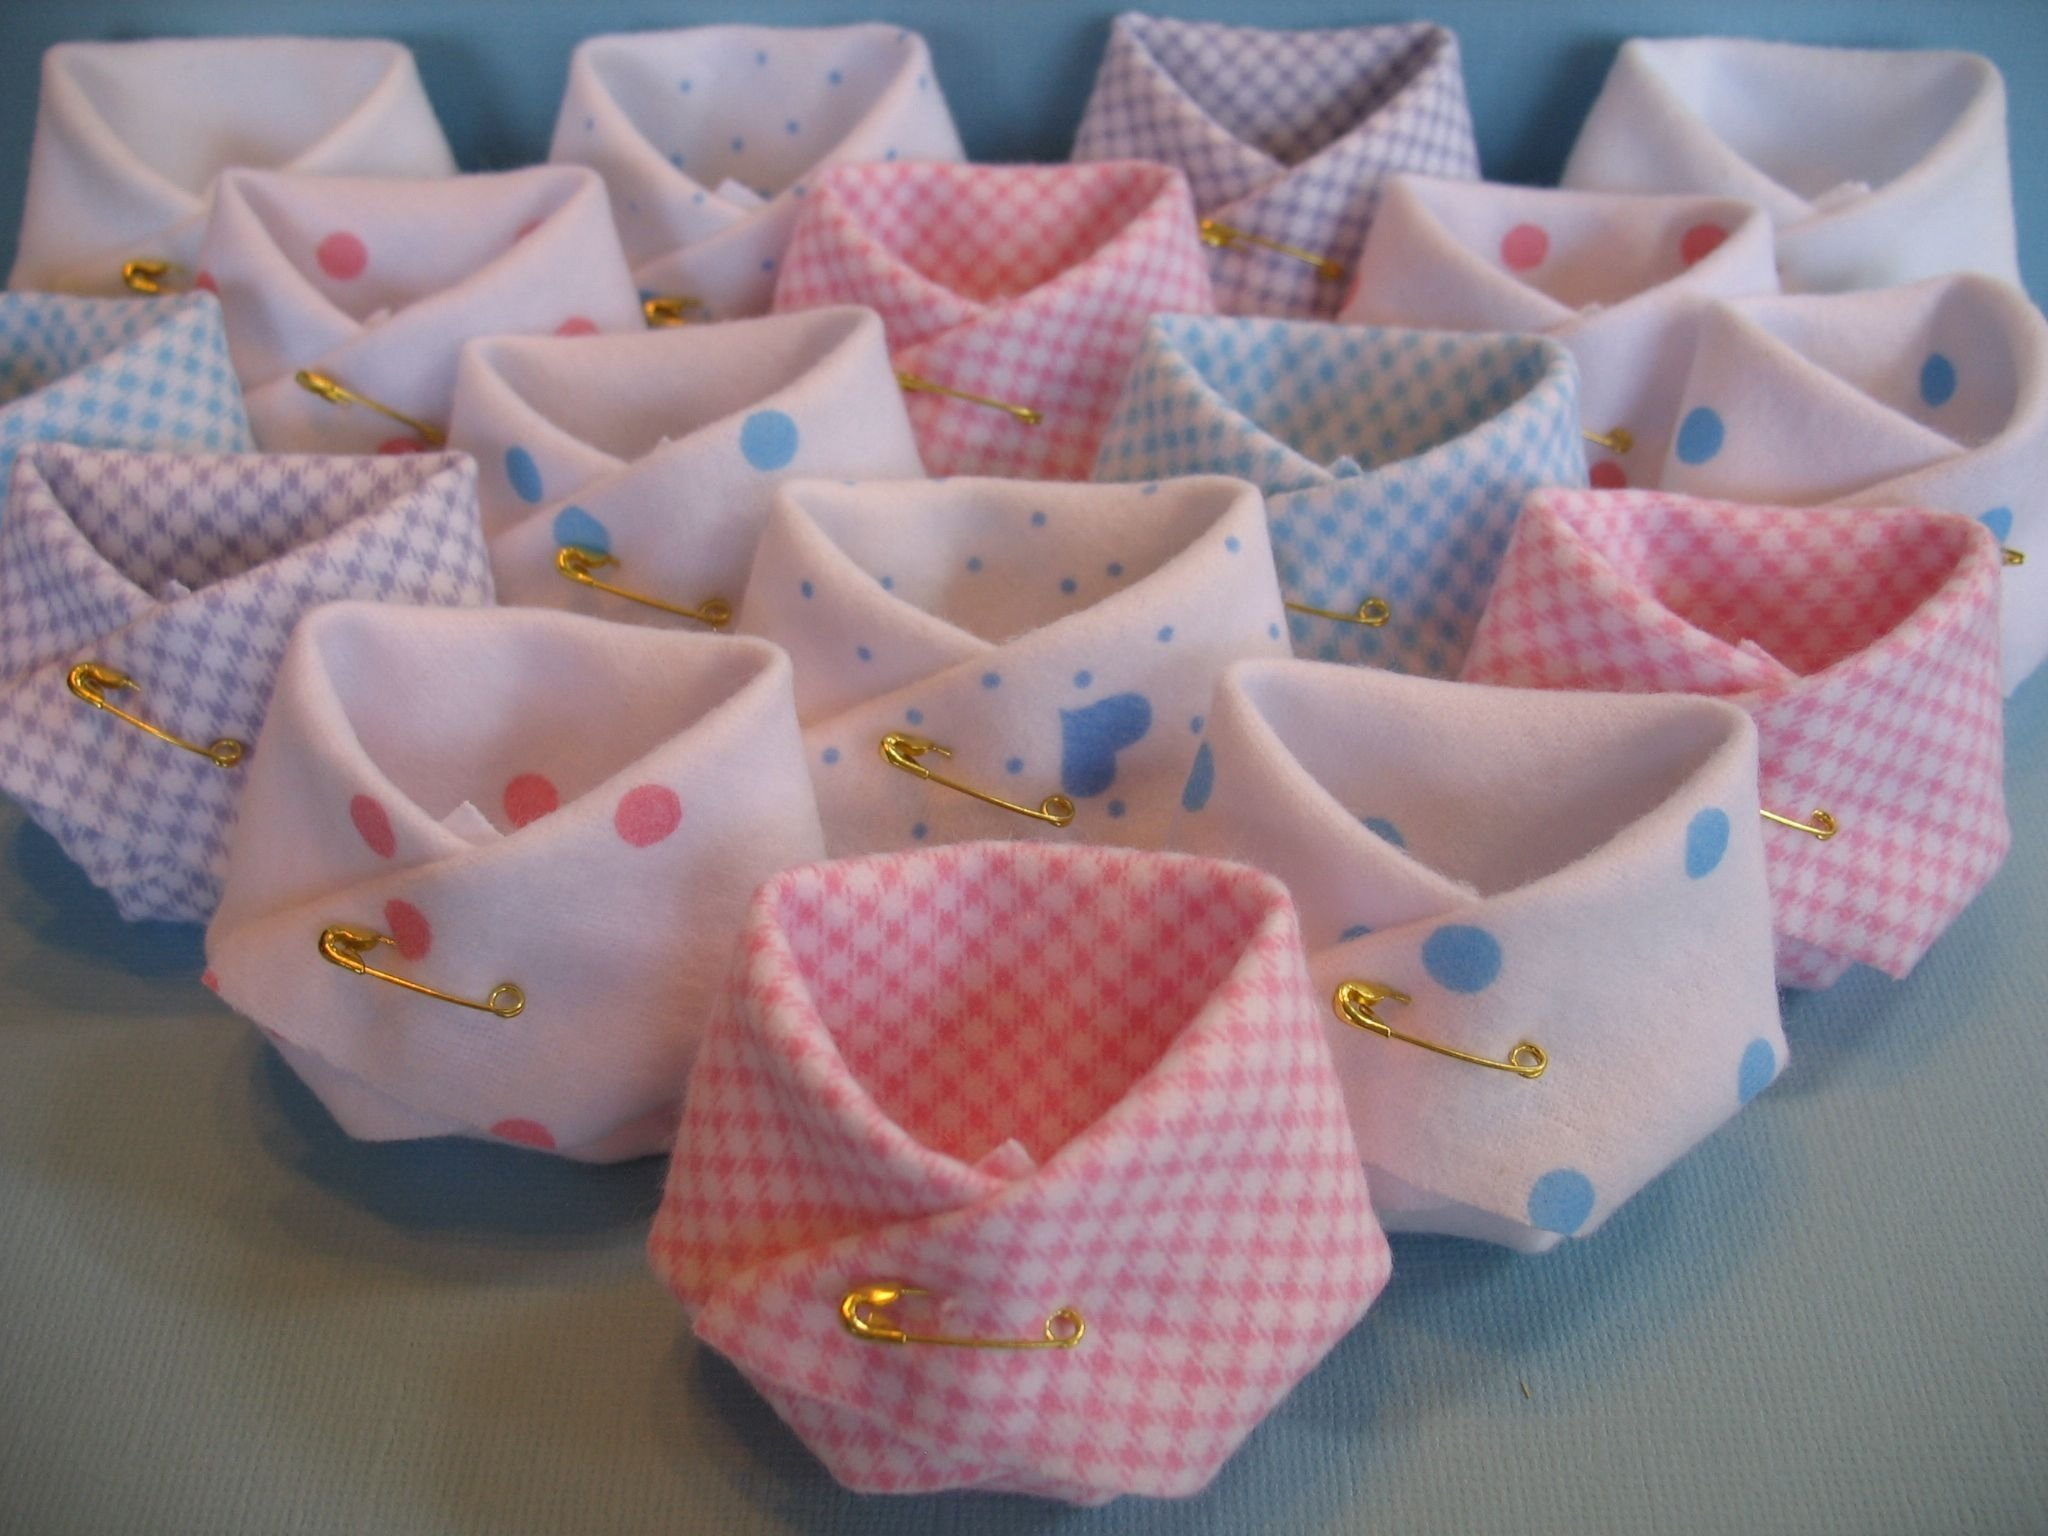 10 Gorgeous Baby Shower Favor Ideas For Girls party favors baby shower diapers fill em up about to pop 2020